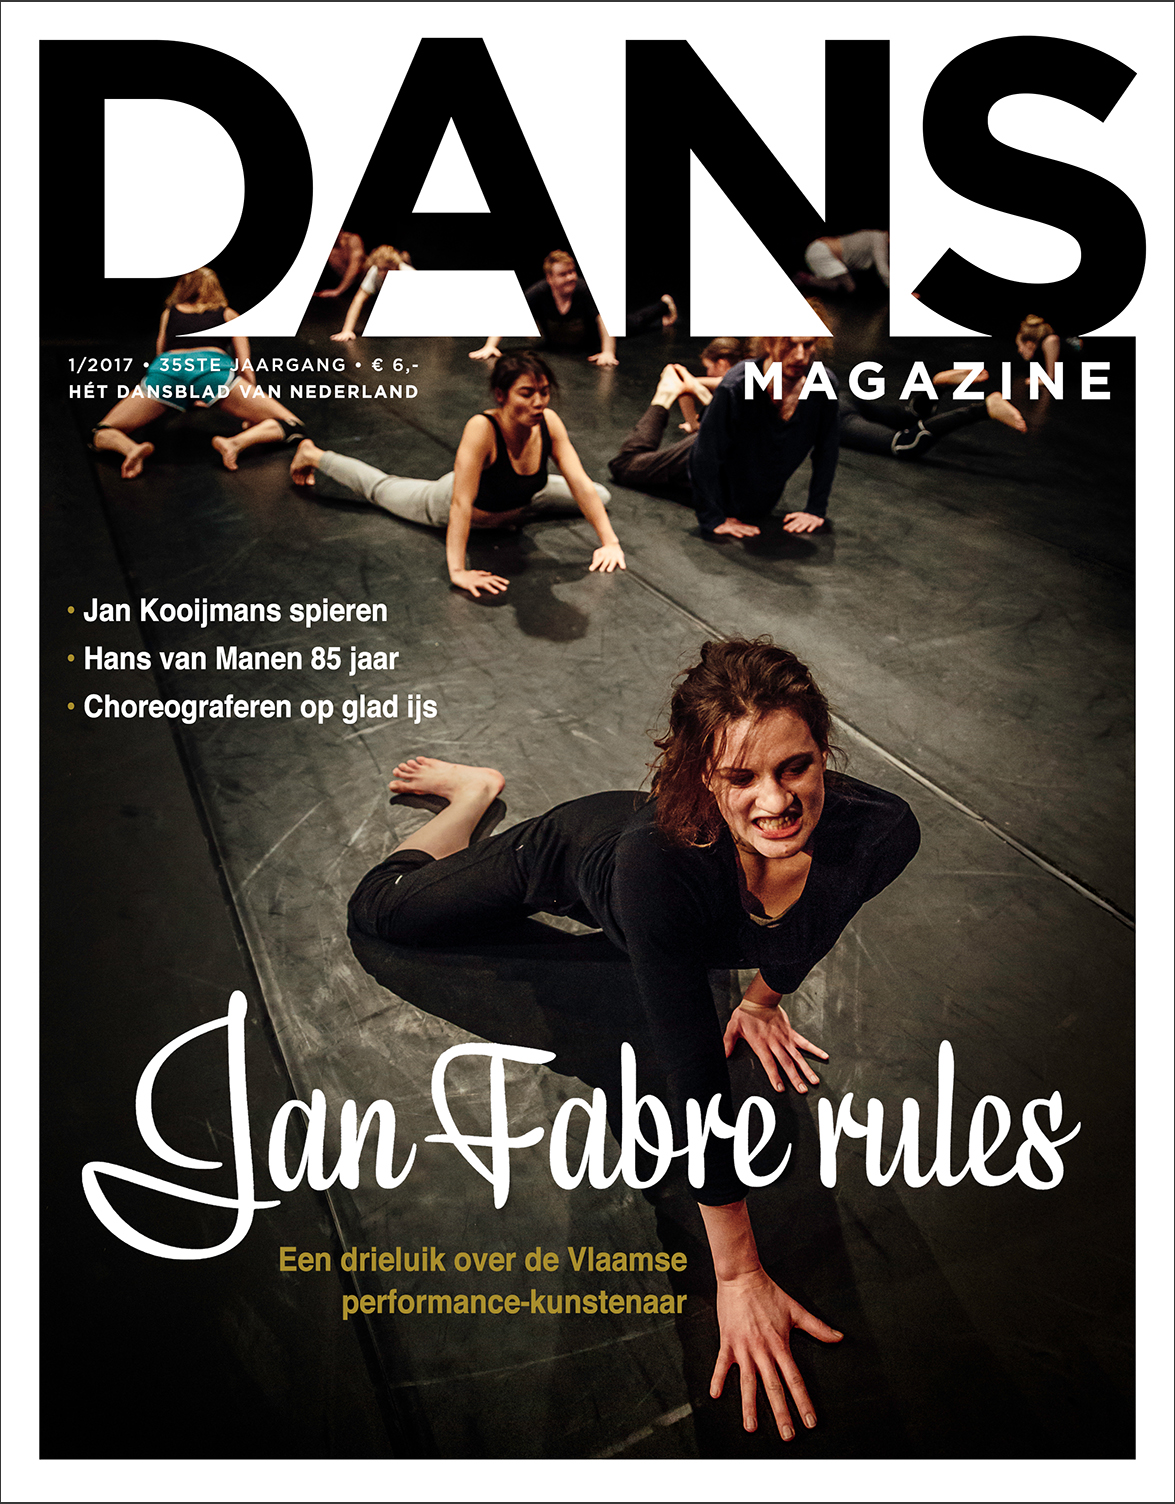 Dans Magazine | Jan Fabre rules